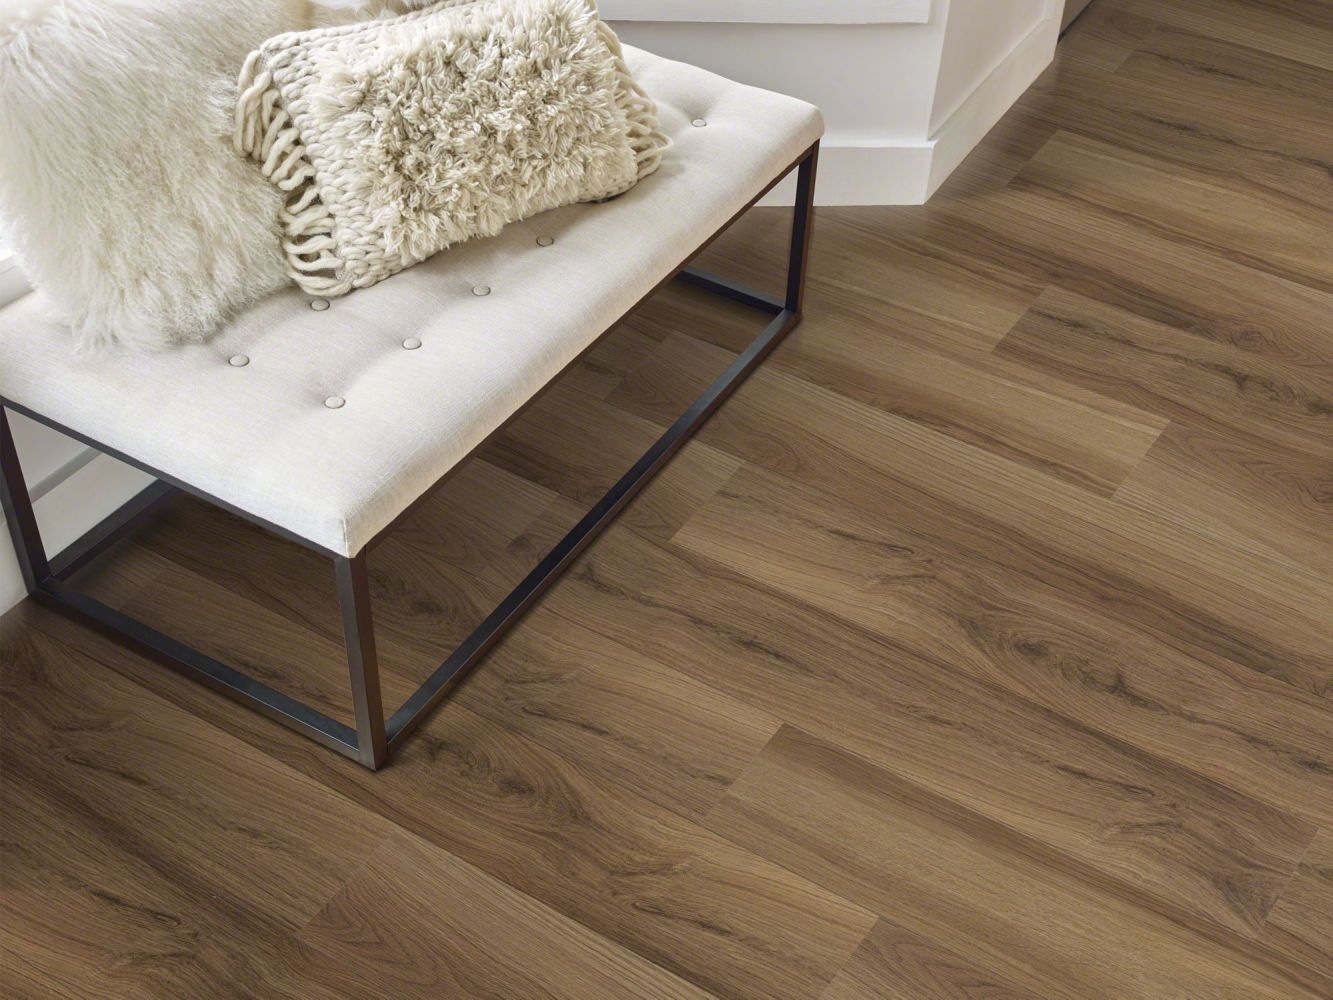 Shaw Floors Resilient Residential Piancavallo Plus Hazel Oak 00762_HSS47